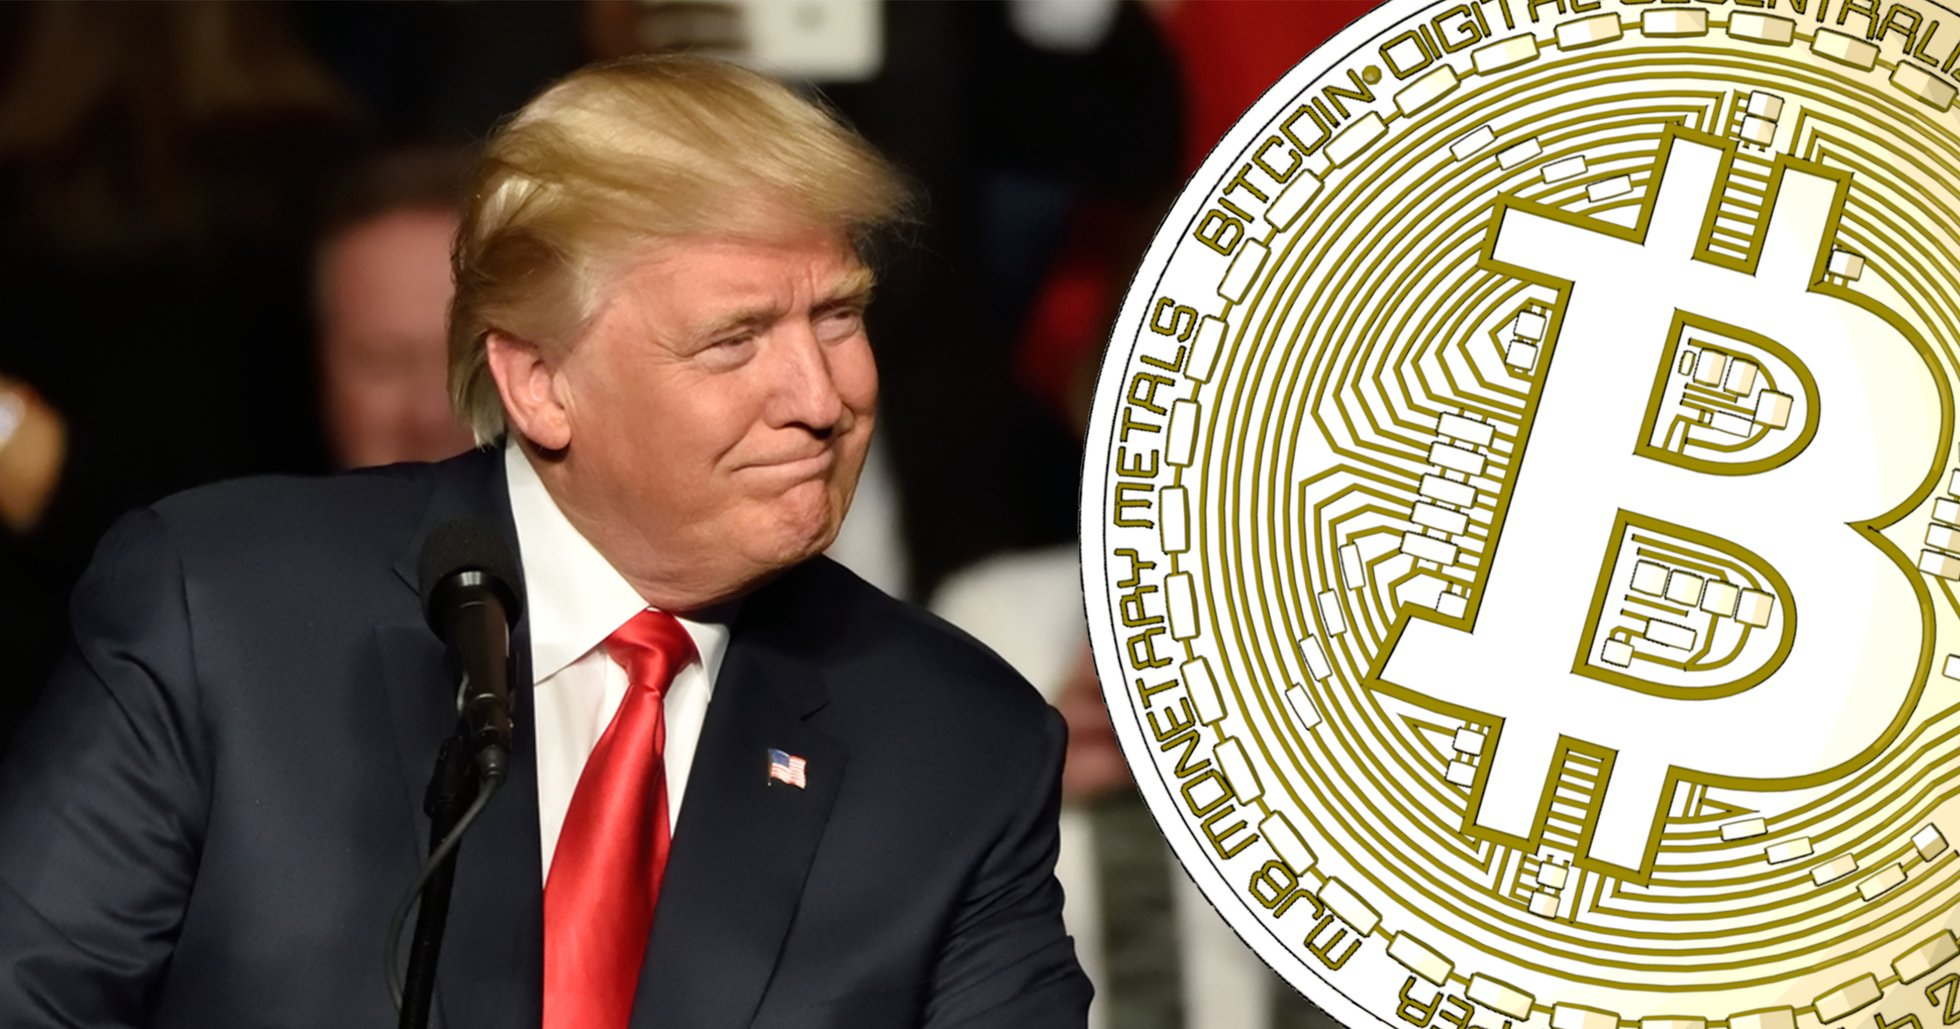 Donald Trump wants to use the blockchain to solve the Israel-Palestine conflict